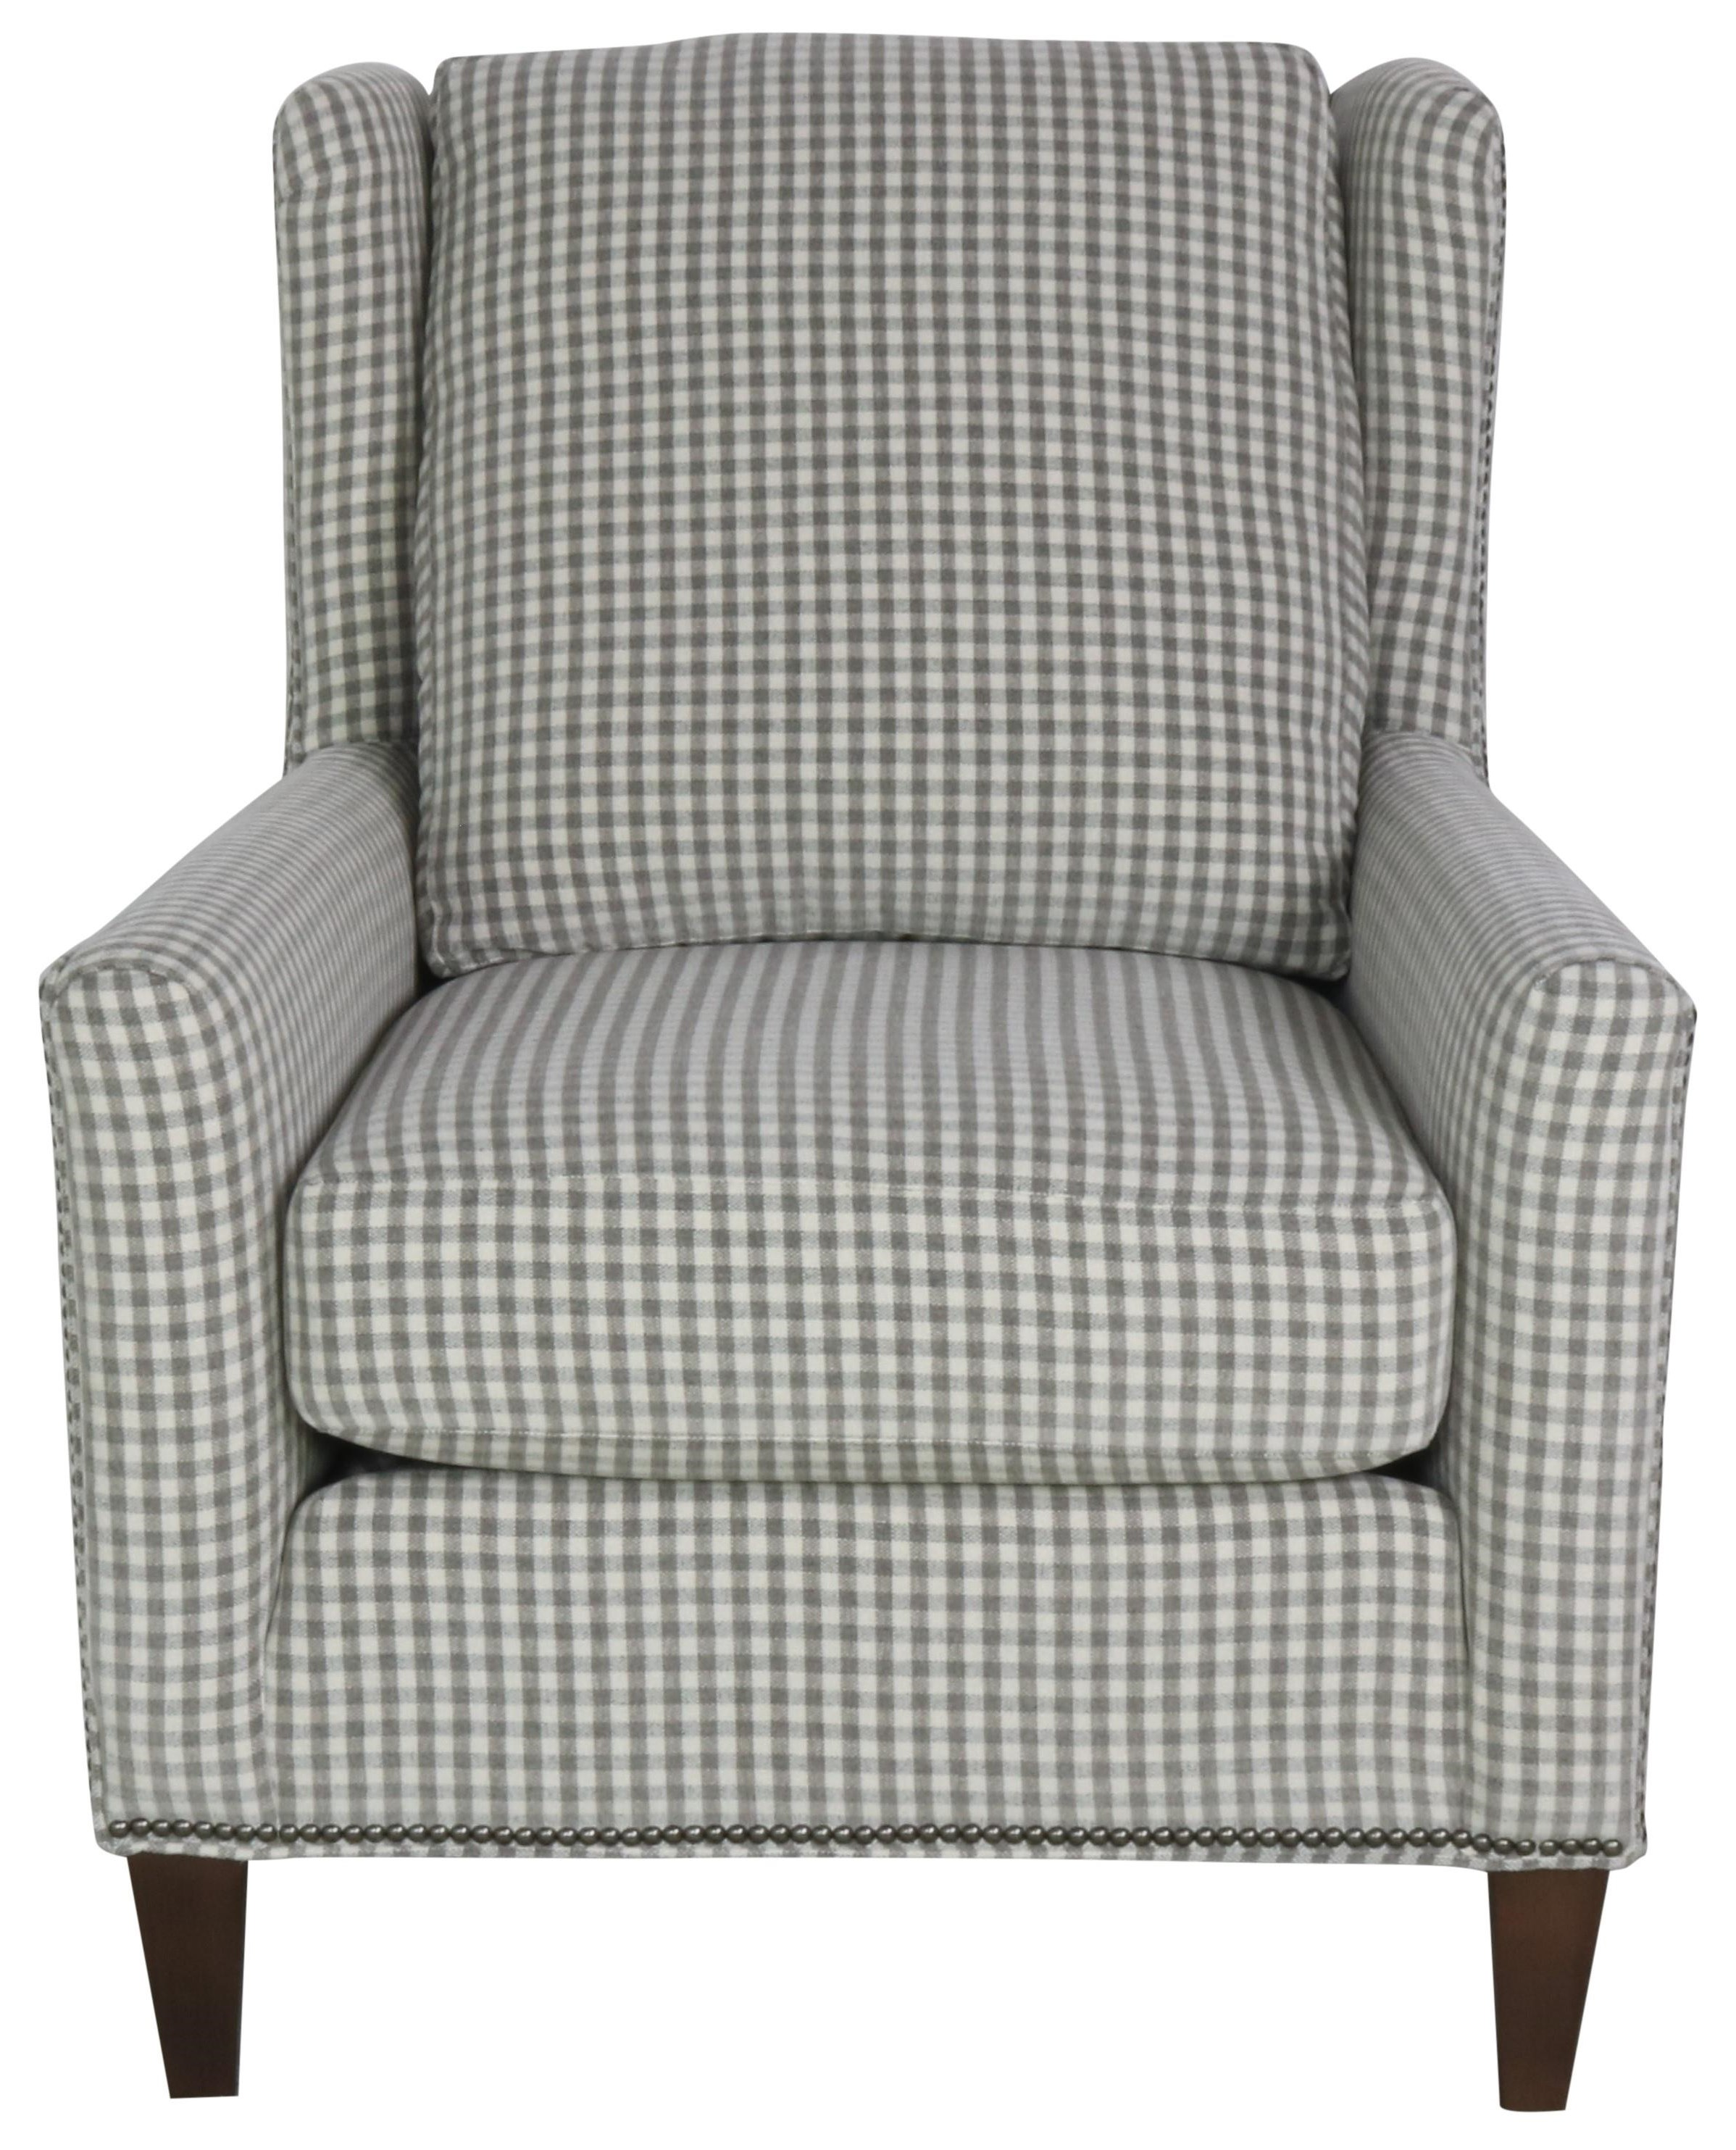 Accent Chairs and Ottomans SB Accent Chair by Smith Brothers at Sprintz Furniture